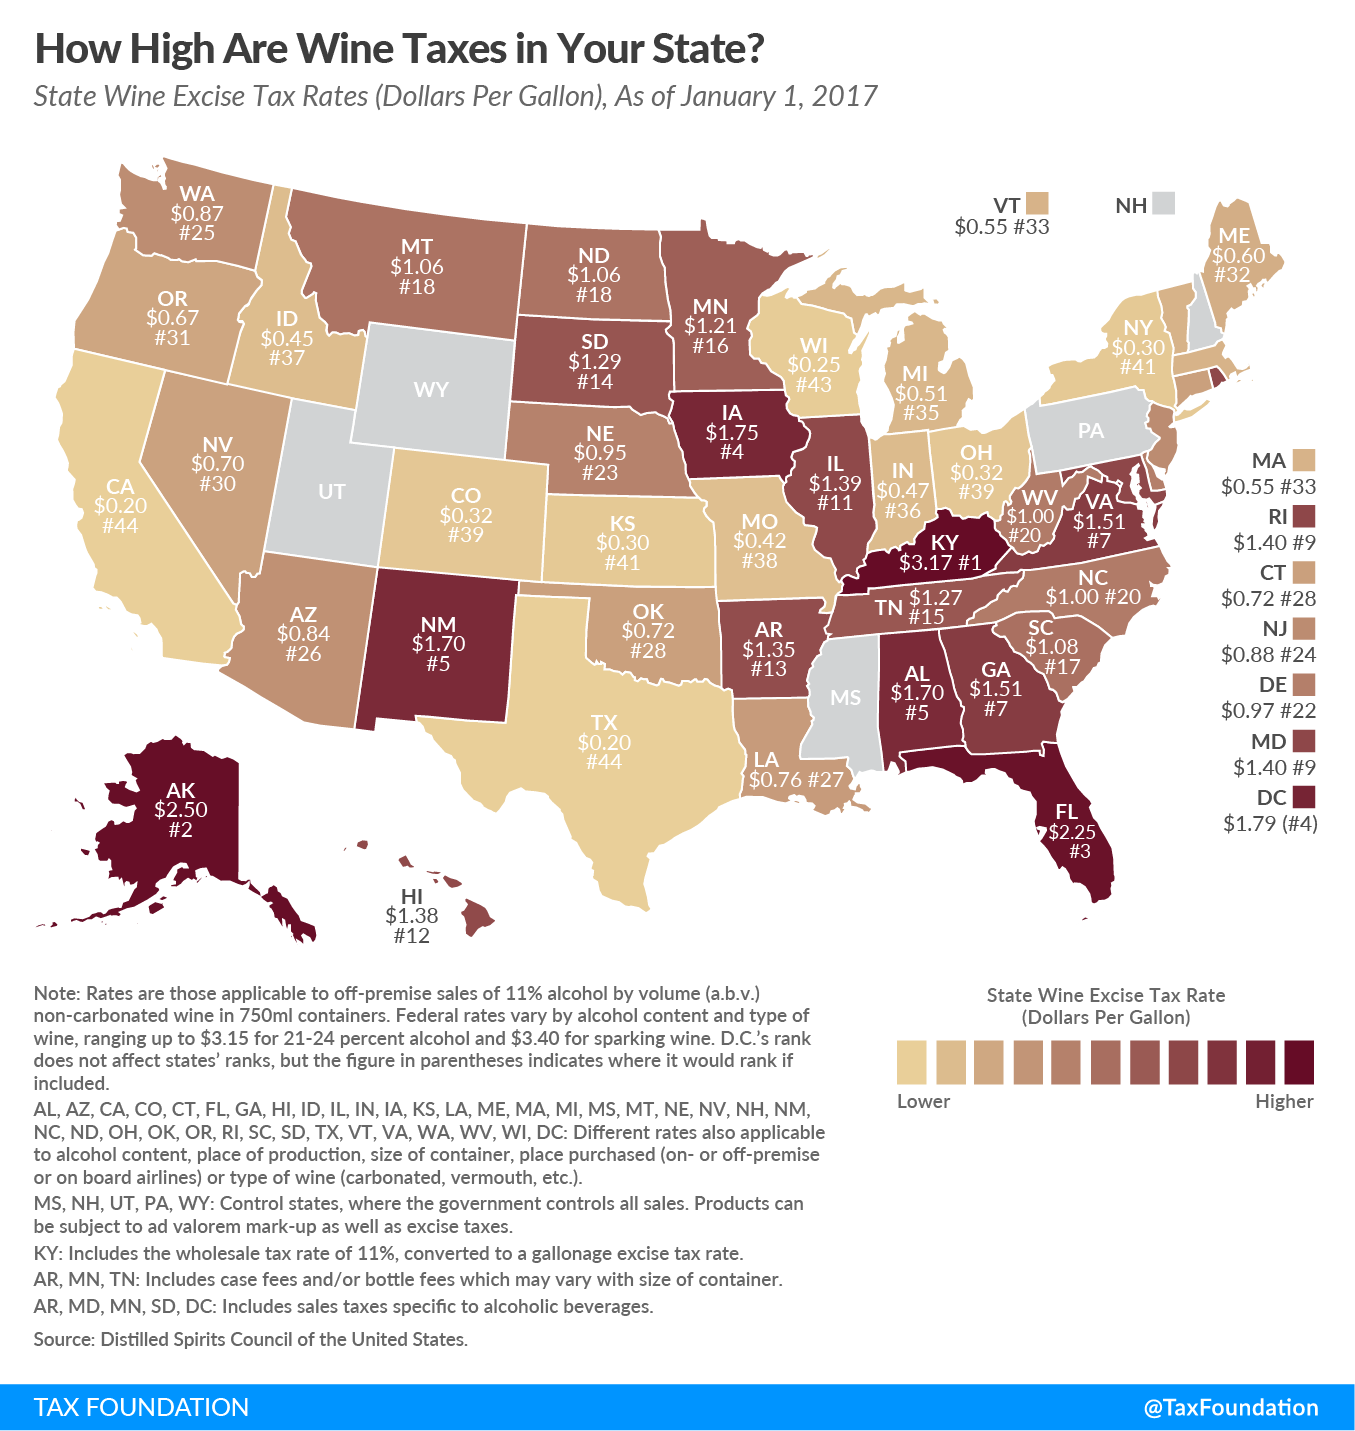 New York State Sales Tax Rate >> How High Are Wine Taxes In Your State? | Tax Foundation